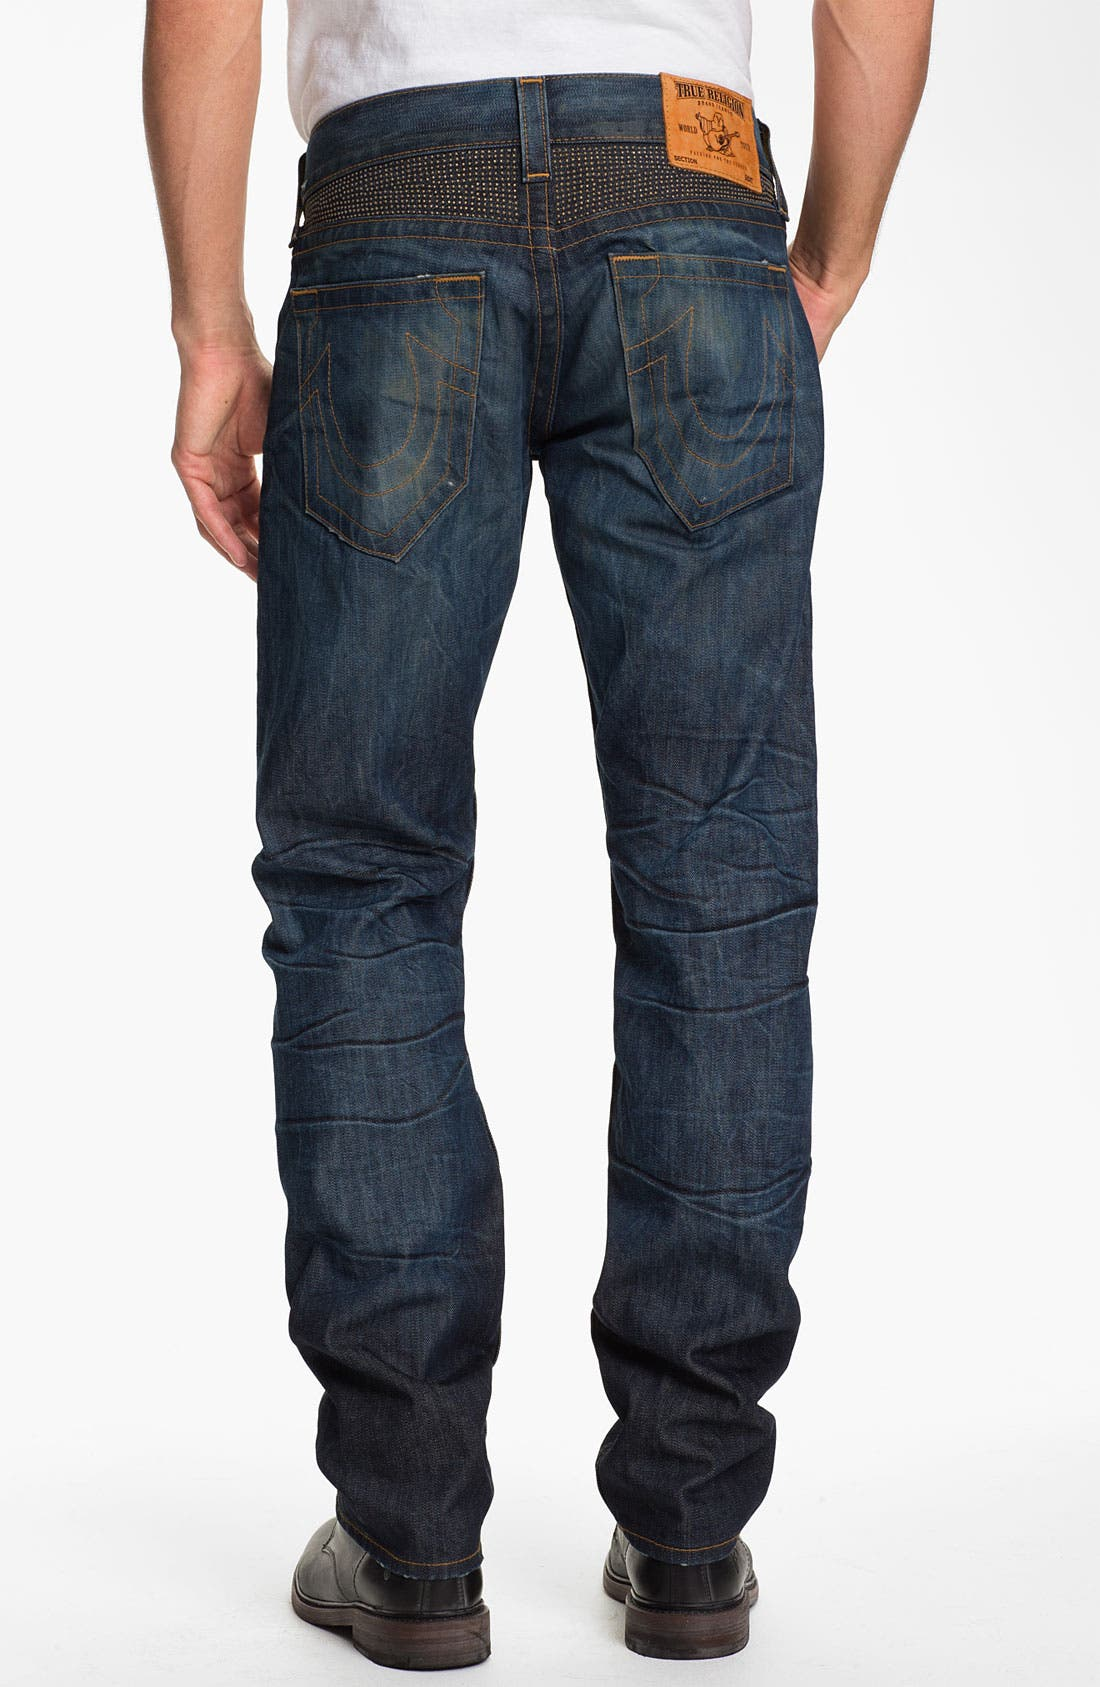 Alternate Image 1 Selected - True Religion Brand Jeans 'Geno' Slim Straight Leg Jeans (Hideout)